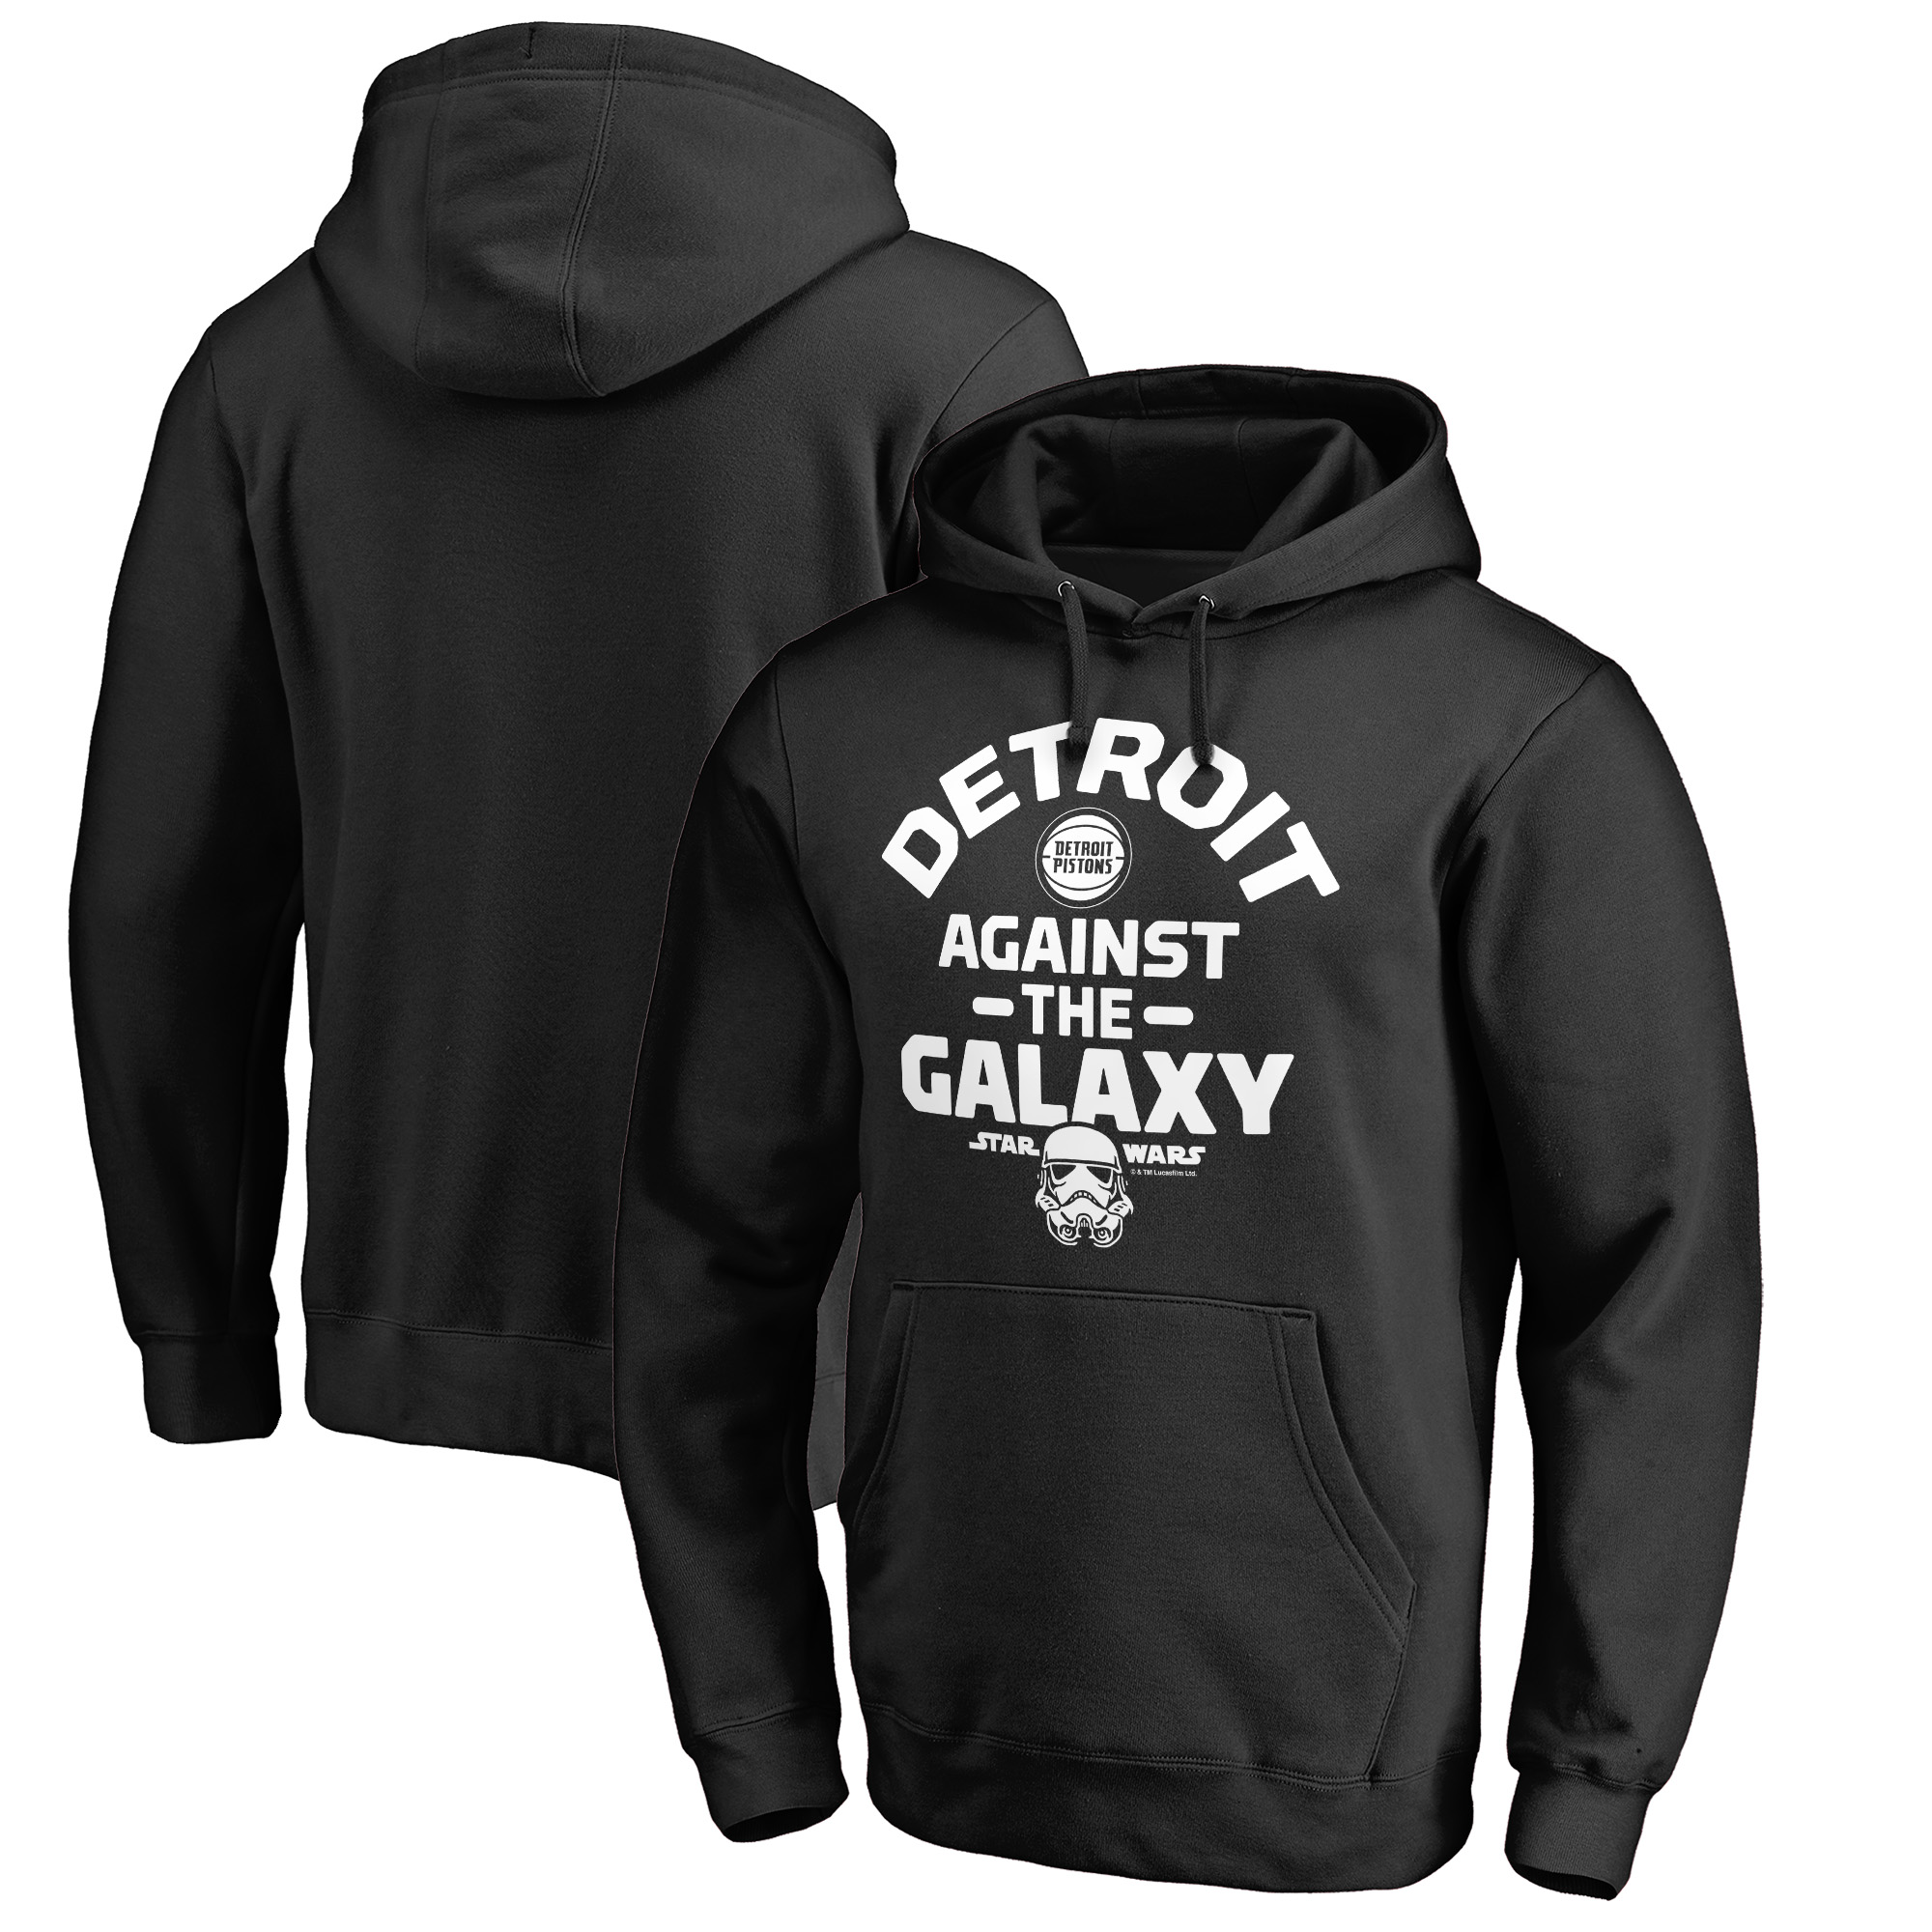 Detroit Pistons Fanatics Branded Star Wars Against the Galaxy Pullover Hoodie - Black